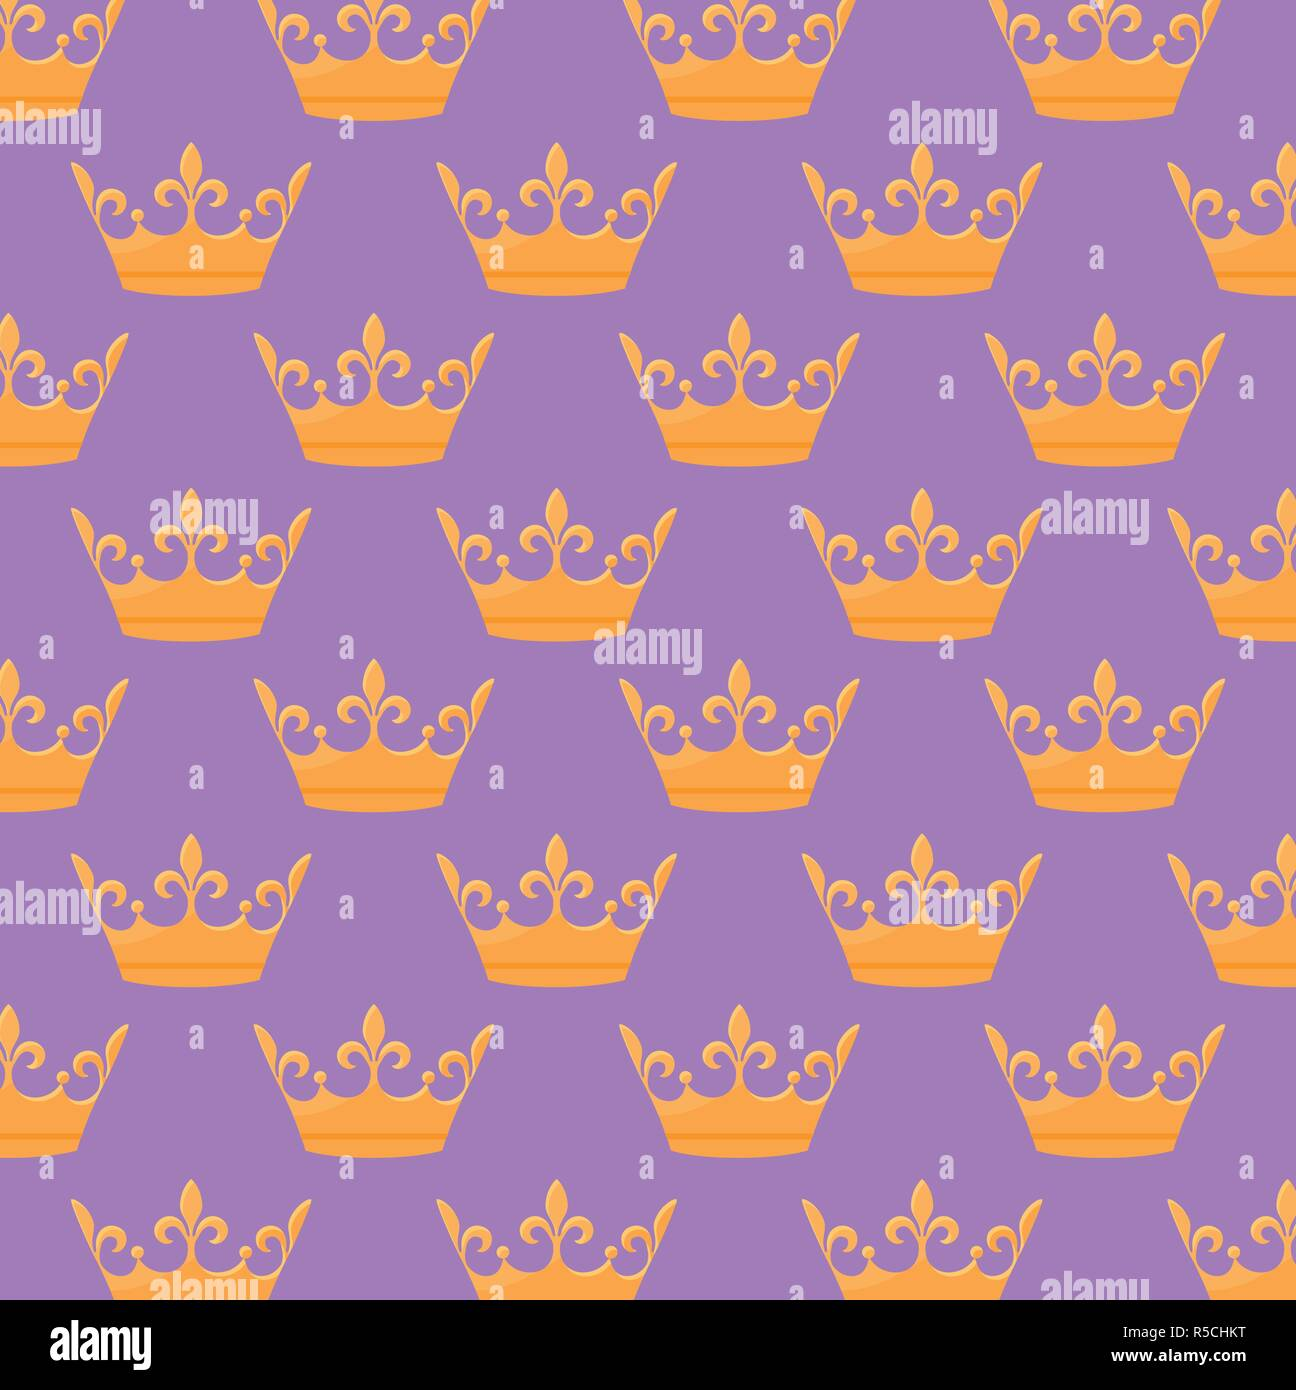 monarchical crown icon pattern vector illustration design - Stock Vector